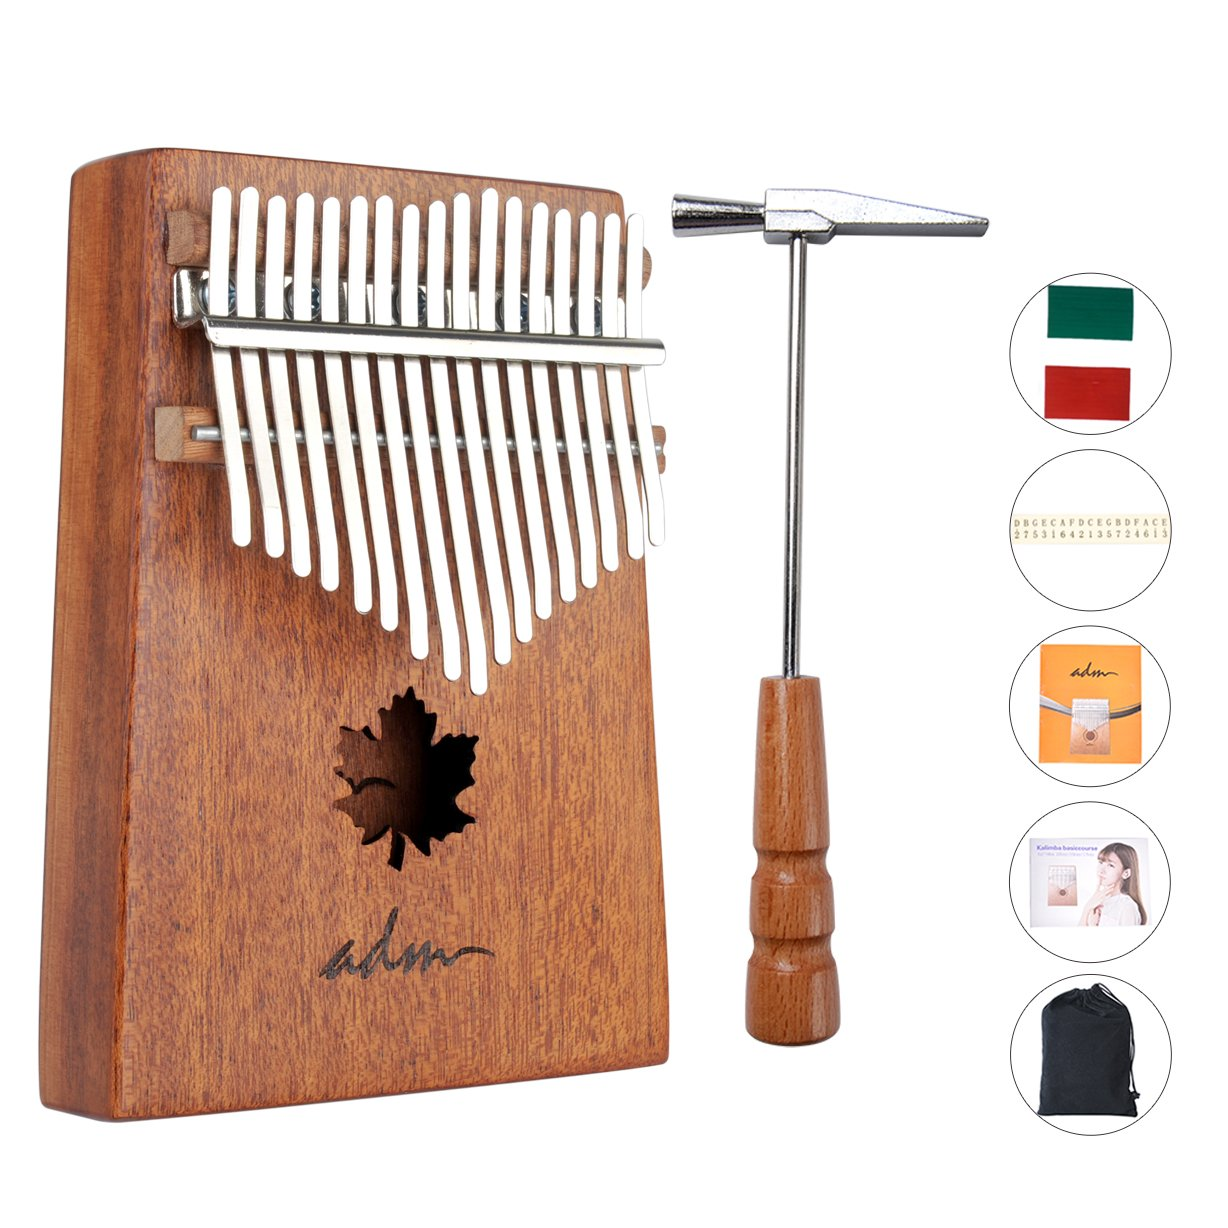 ADM Thumb Piano 17 keys Kalimba African Mahogany Mbira Maple Leaf Sound Hole with Music Book Tune Hammer and Bag by ADM (Image #1)